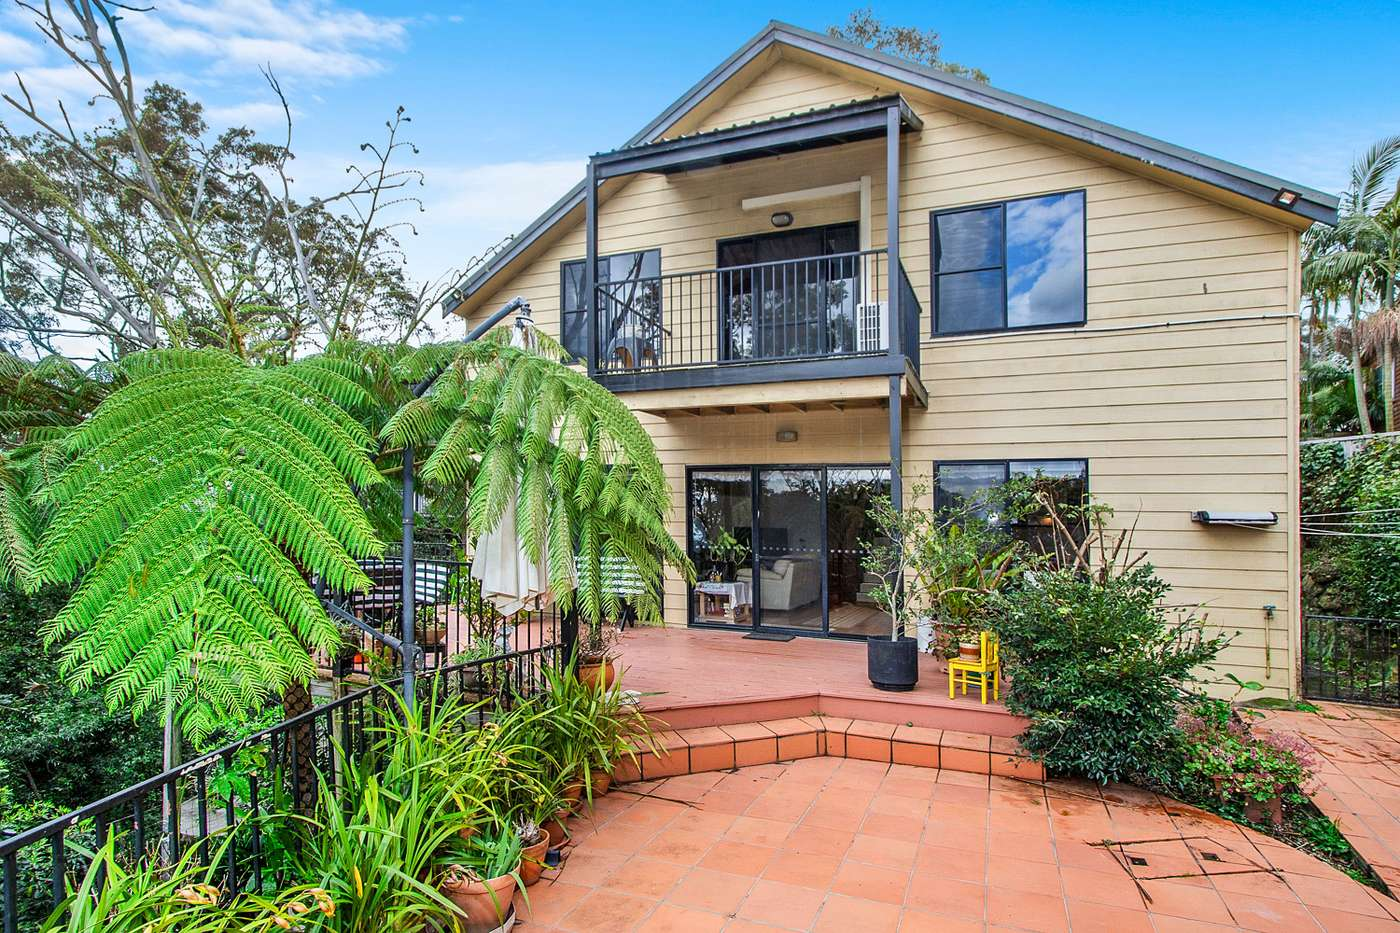 Main view of Homely house listing, 7 Maple Street, Bowen Mountain, NSW 2753